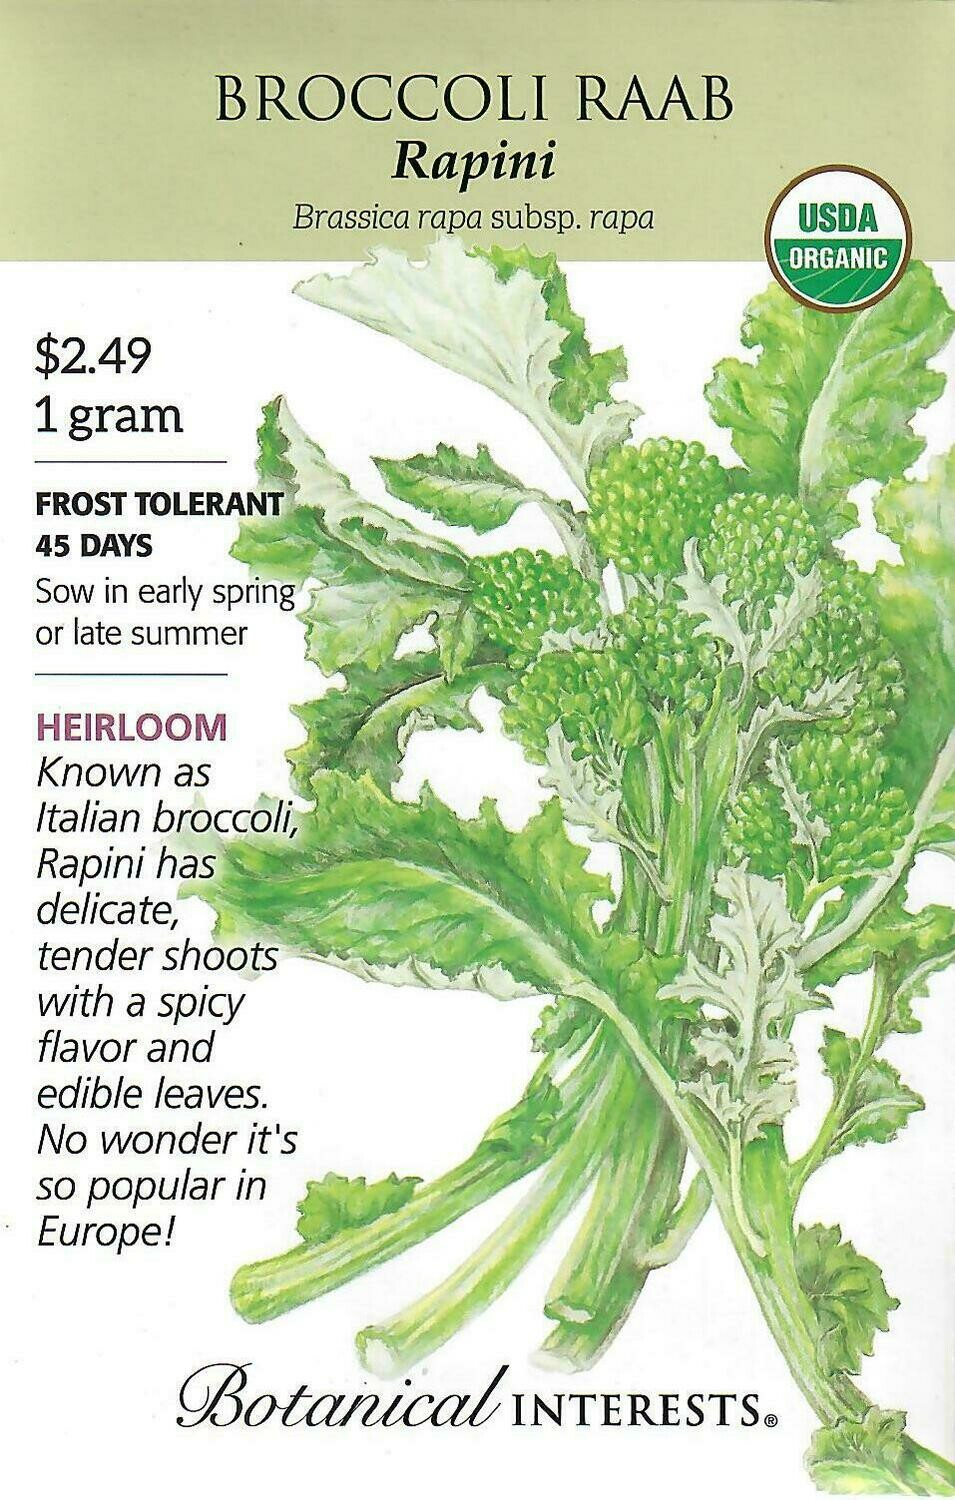 Broccoli Raab Rapini Org Botanical Interests